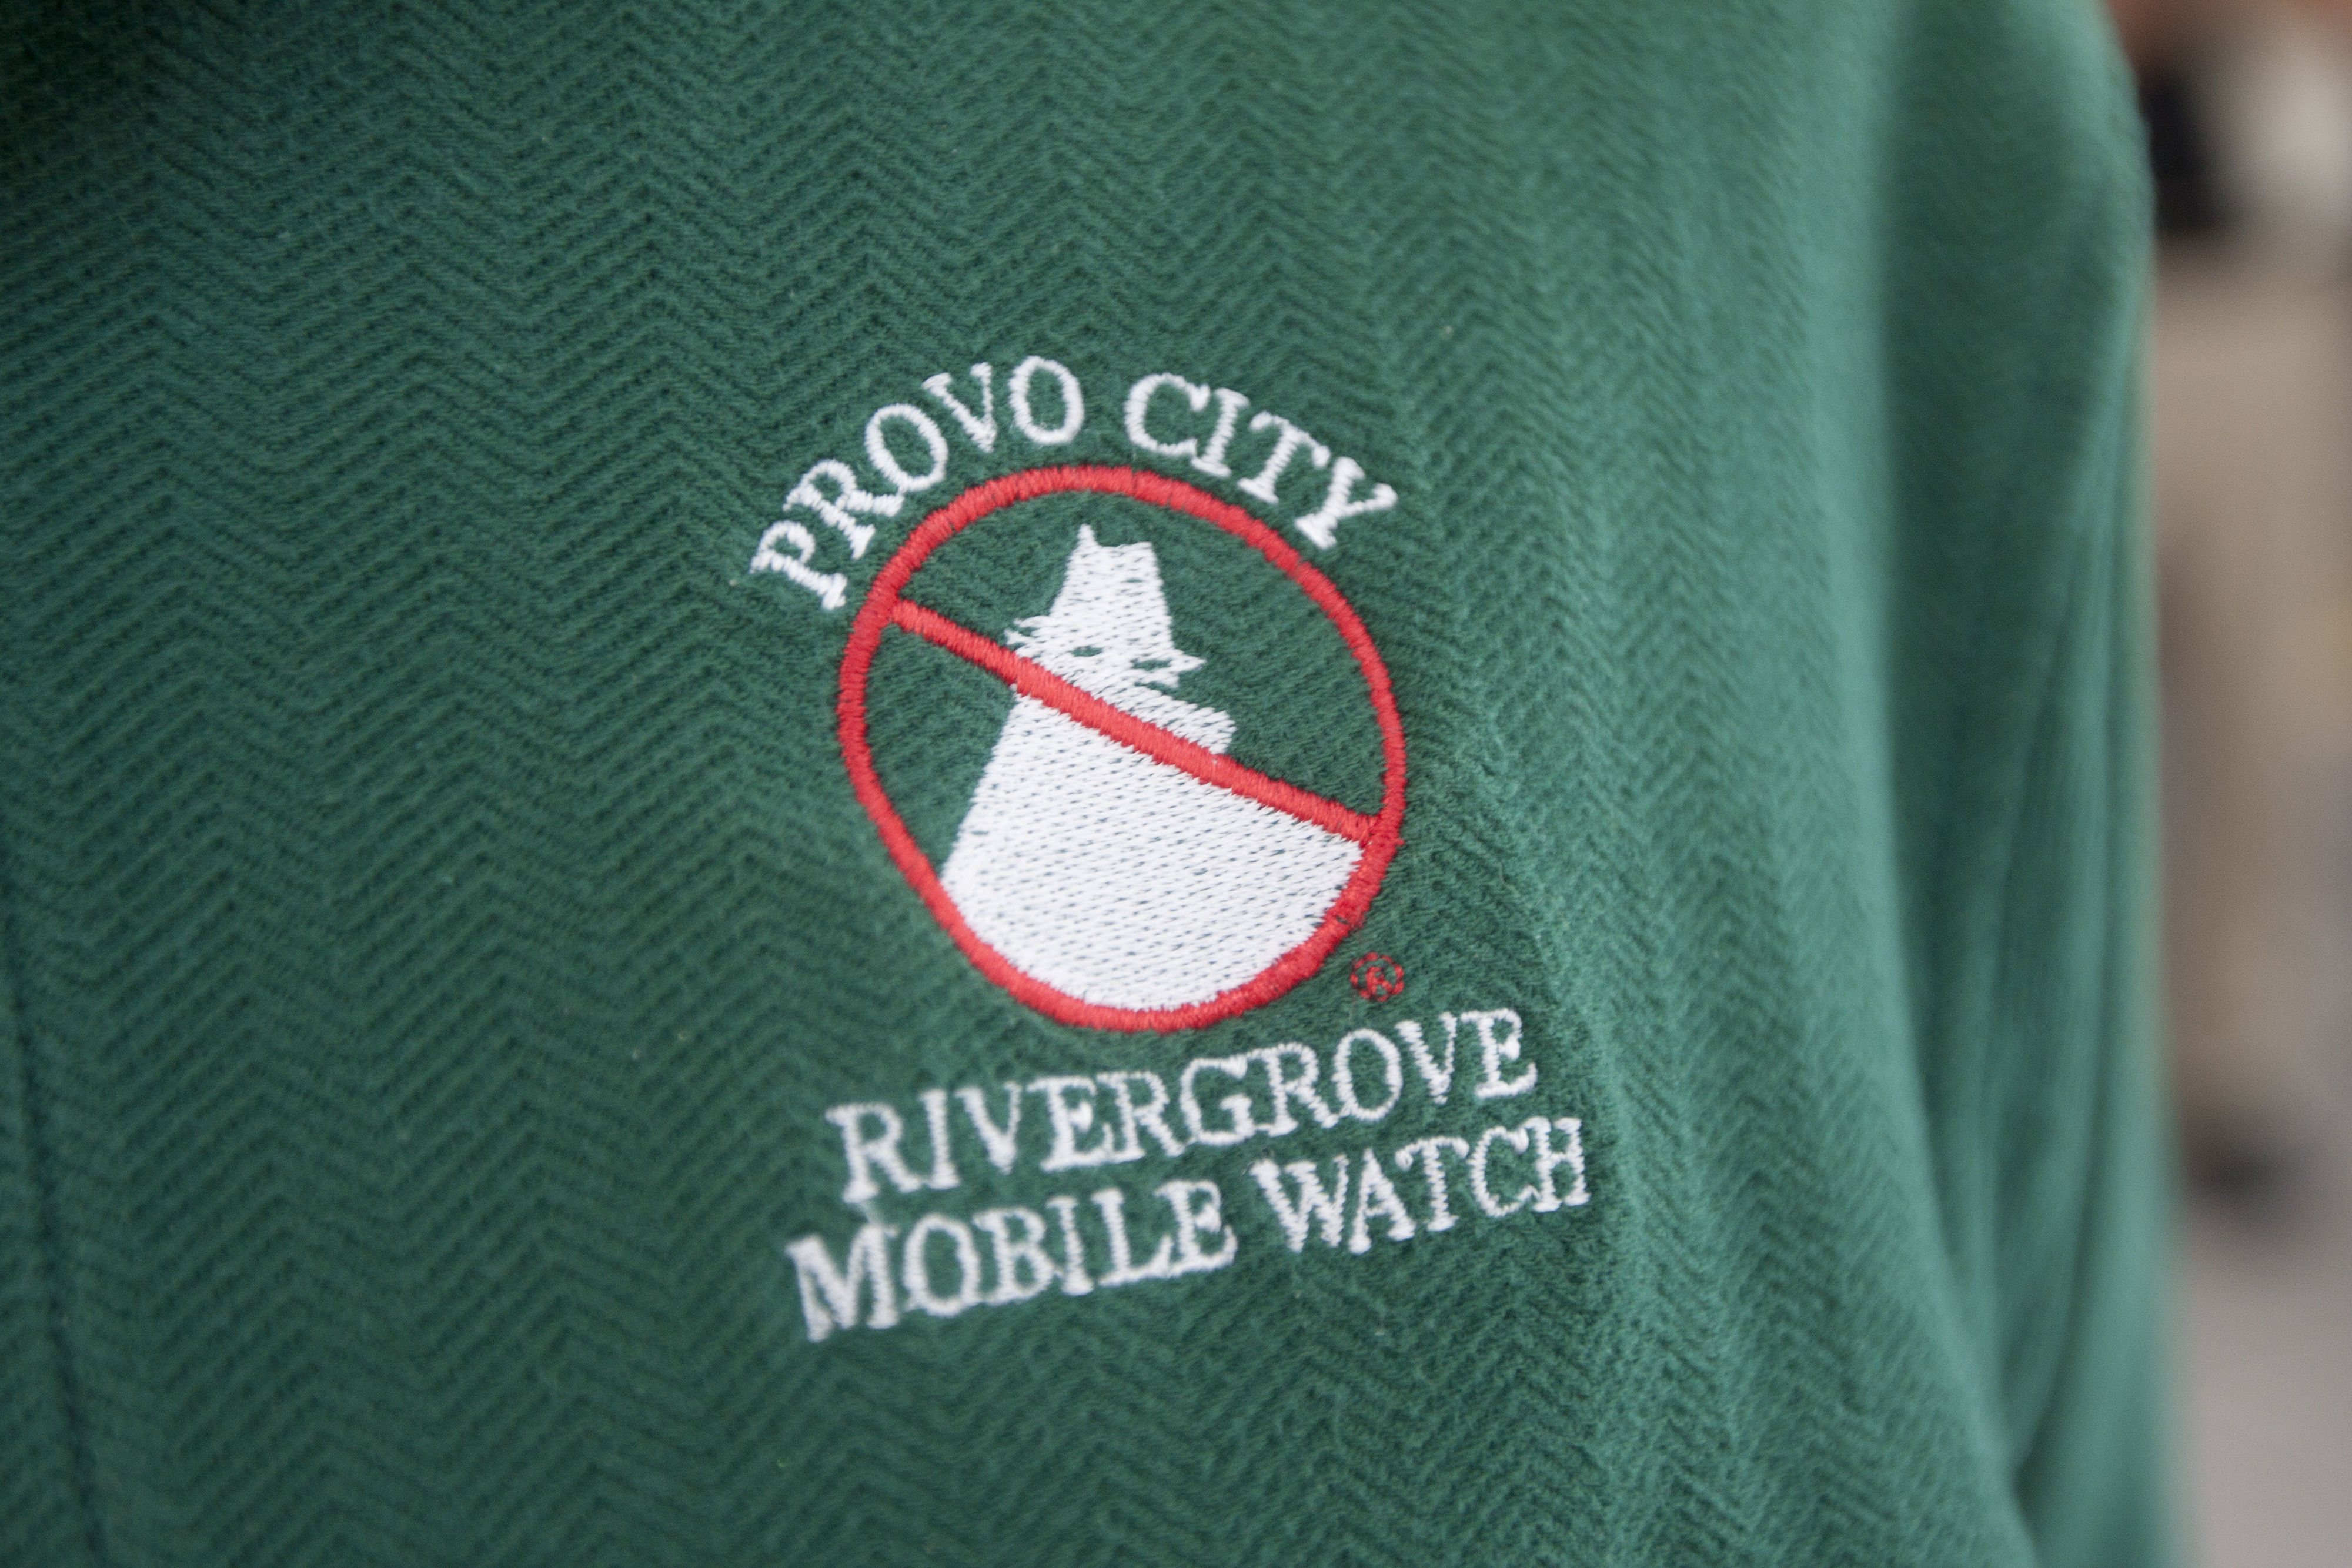 A Provo Police volunteer wears his Mobile Watch shirt. photo by Chris Bunker